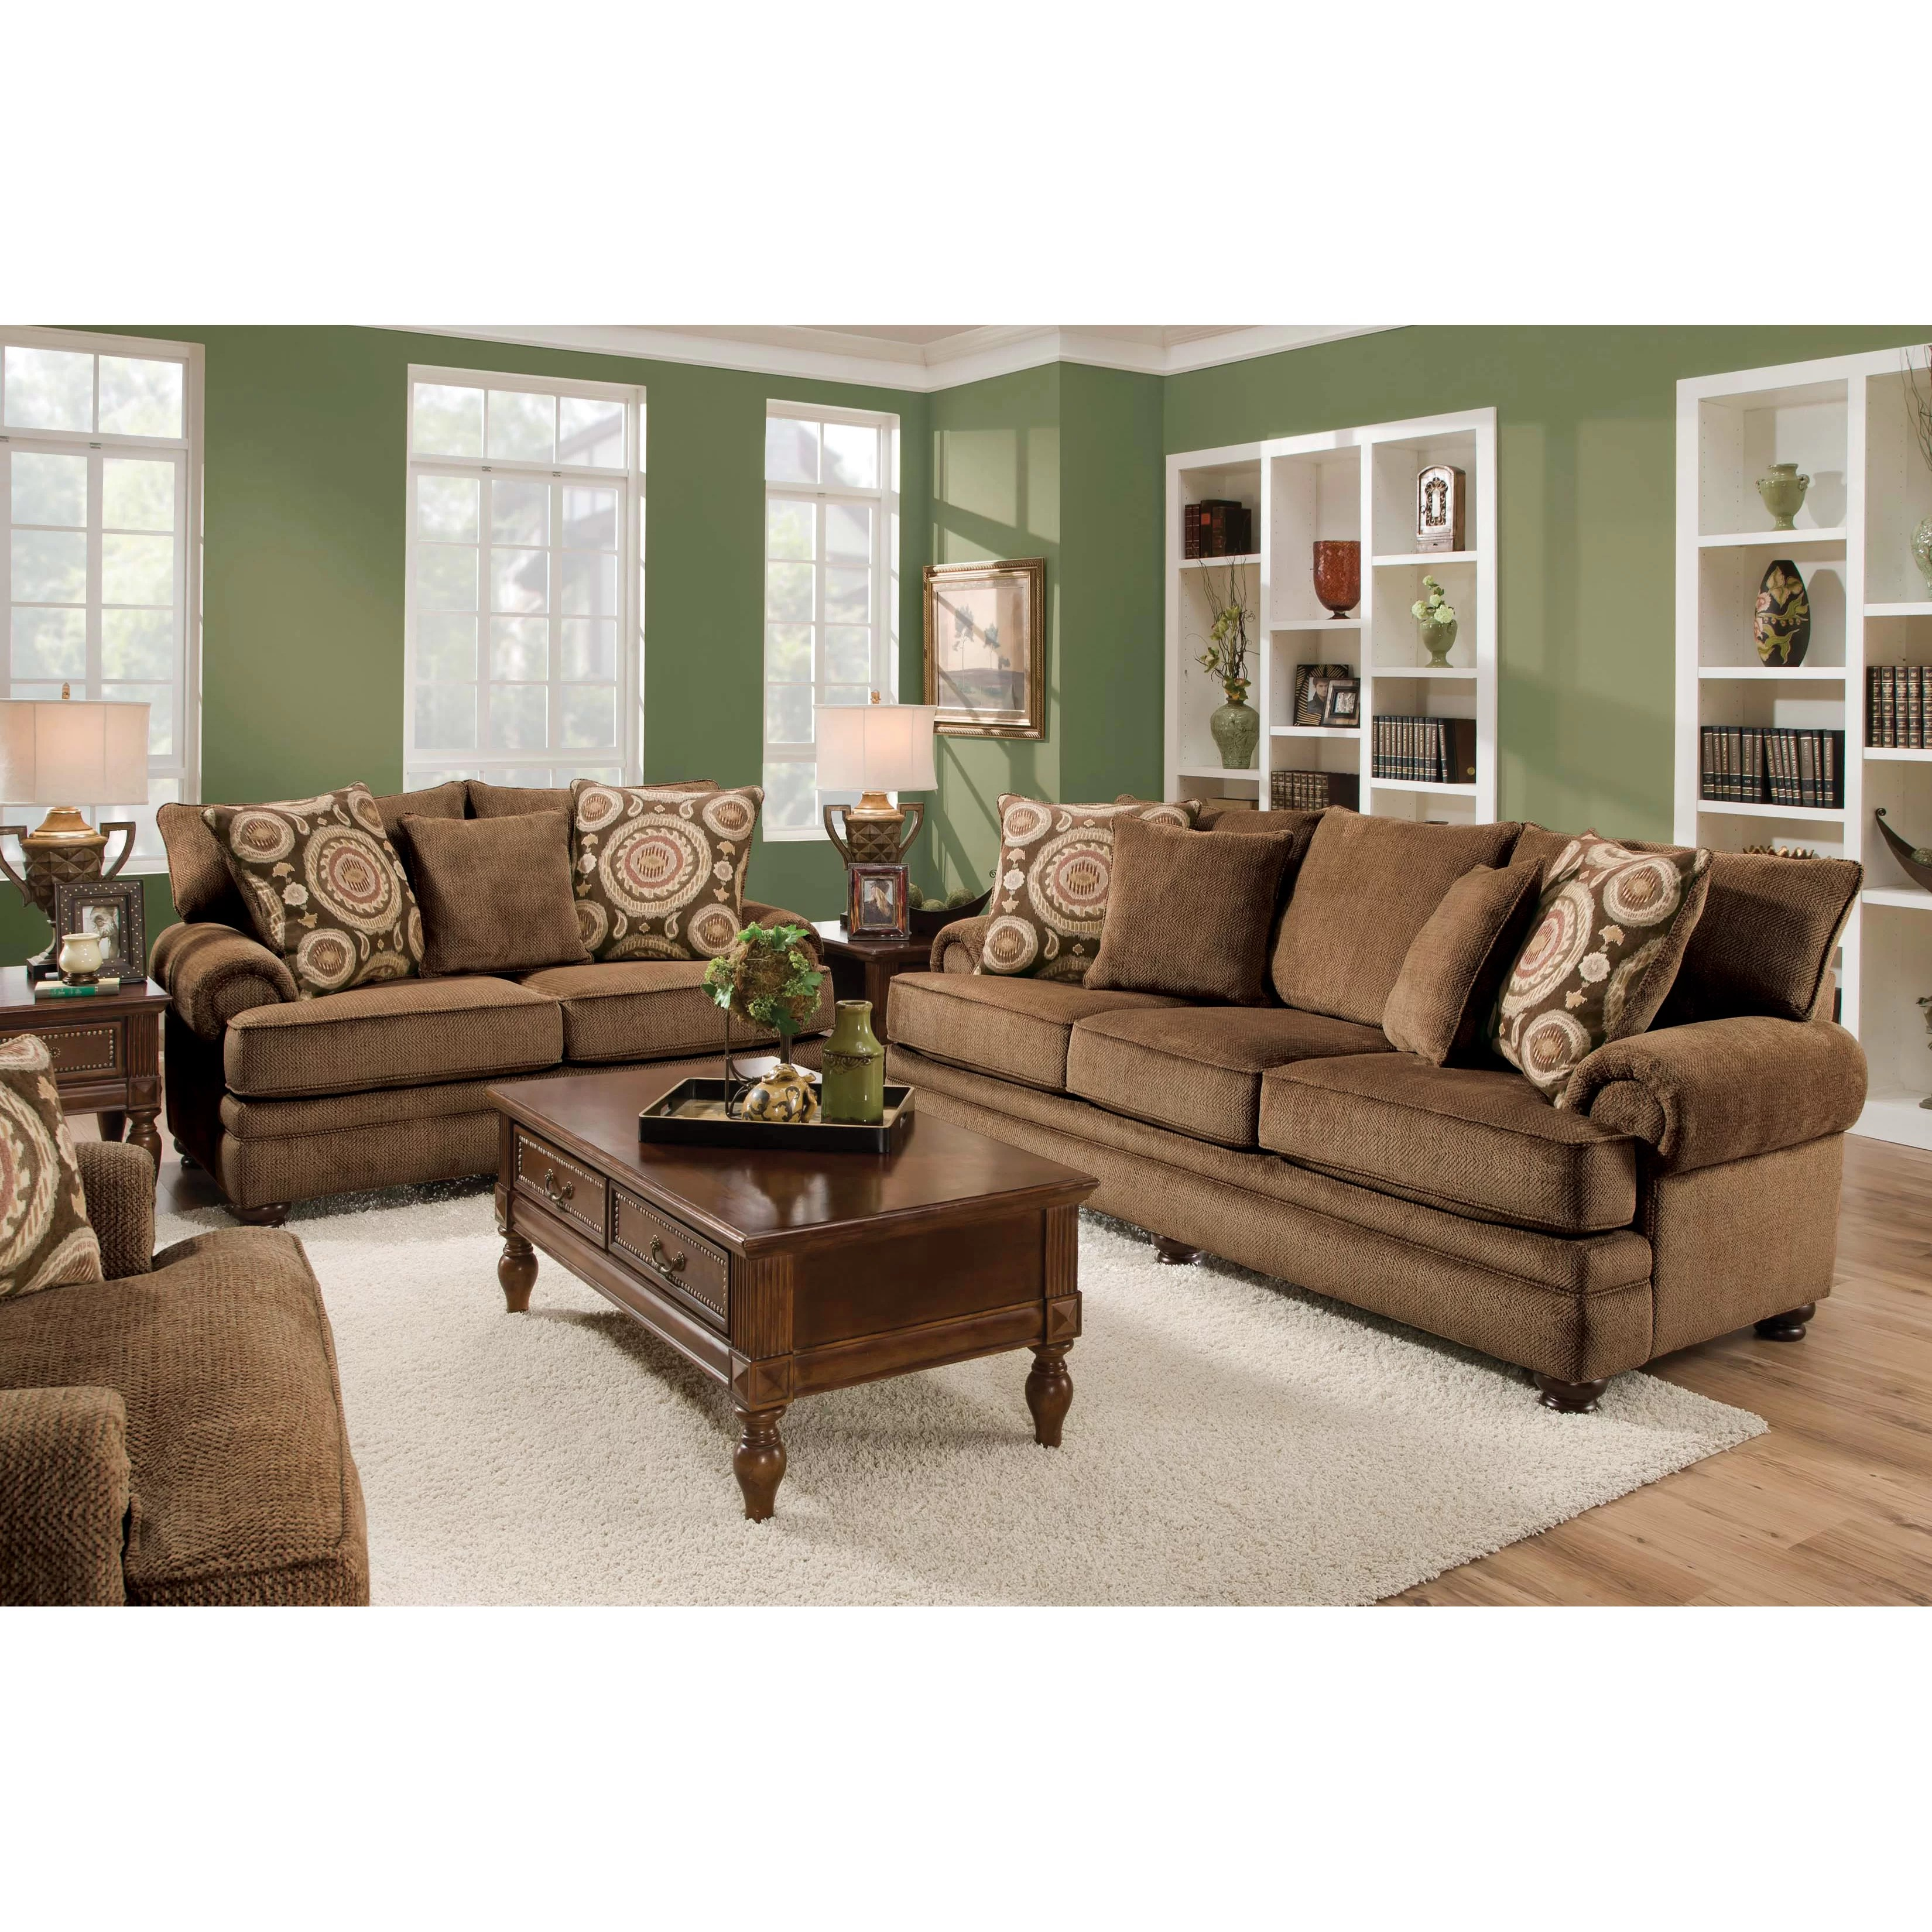 Alcott Hill Living Room Collection & Reviews